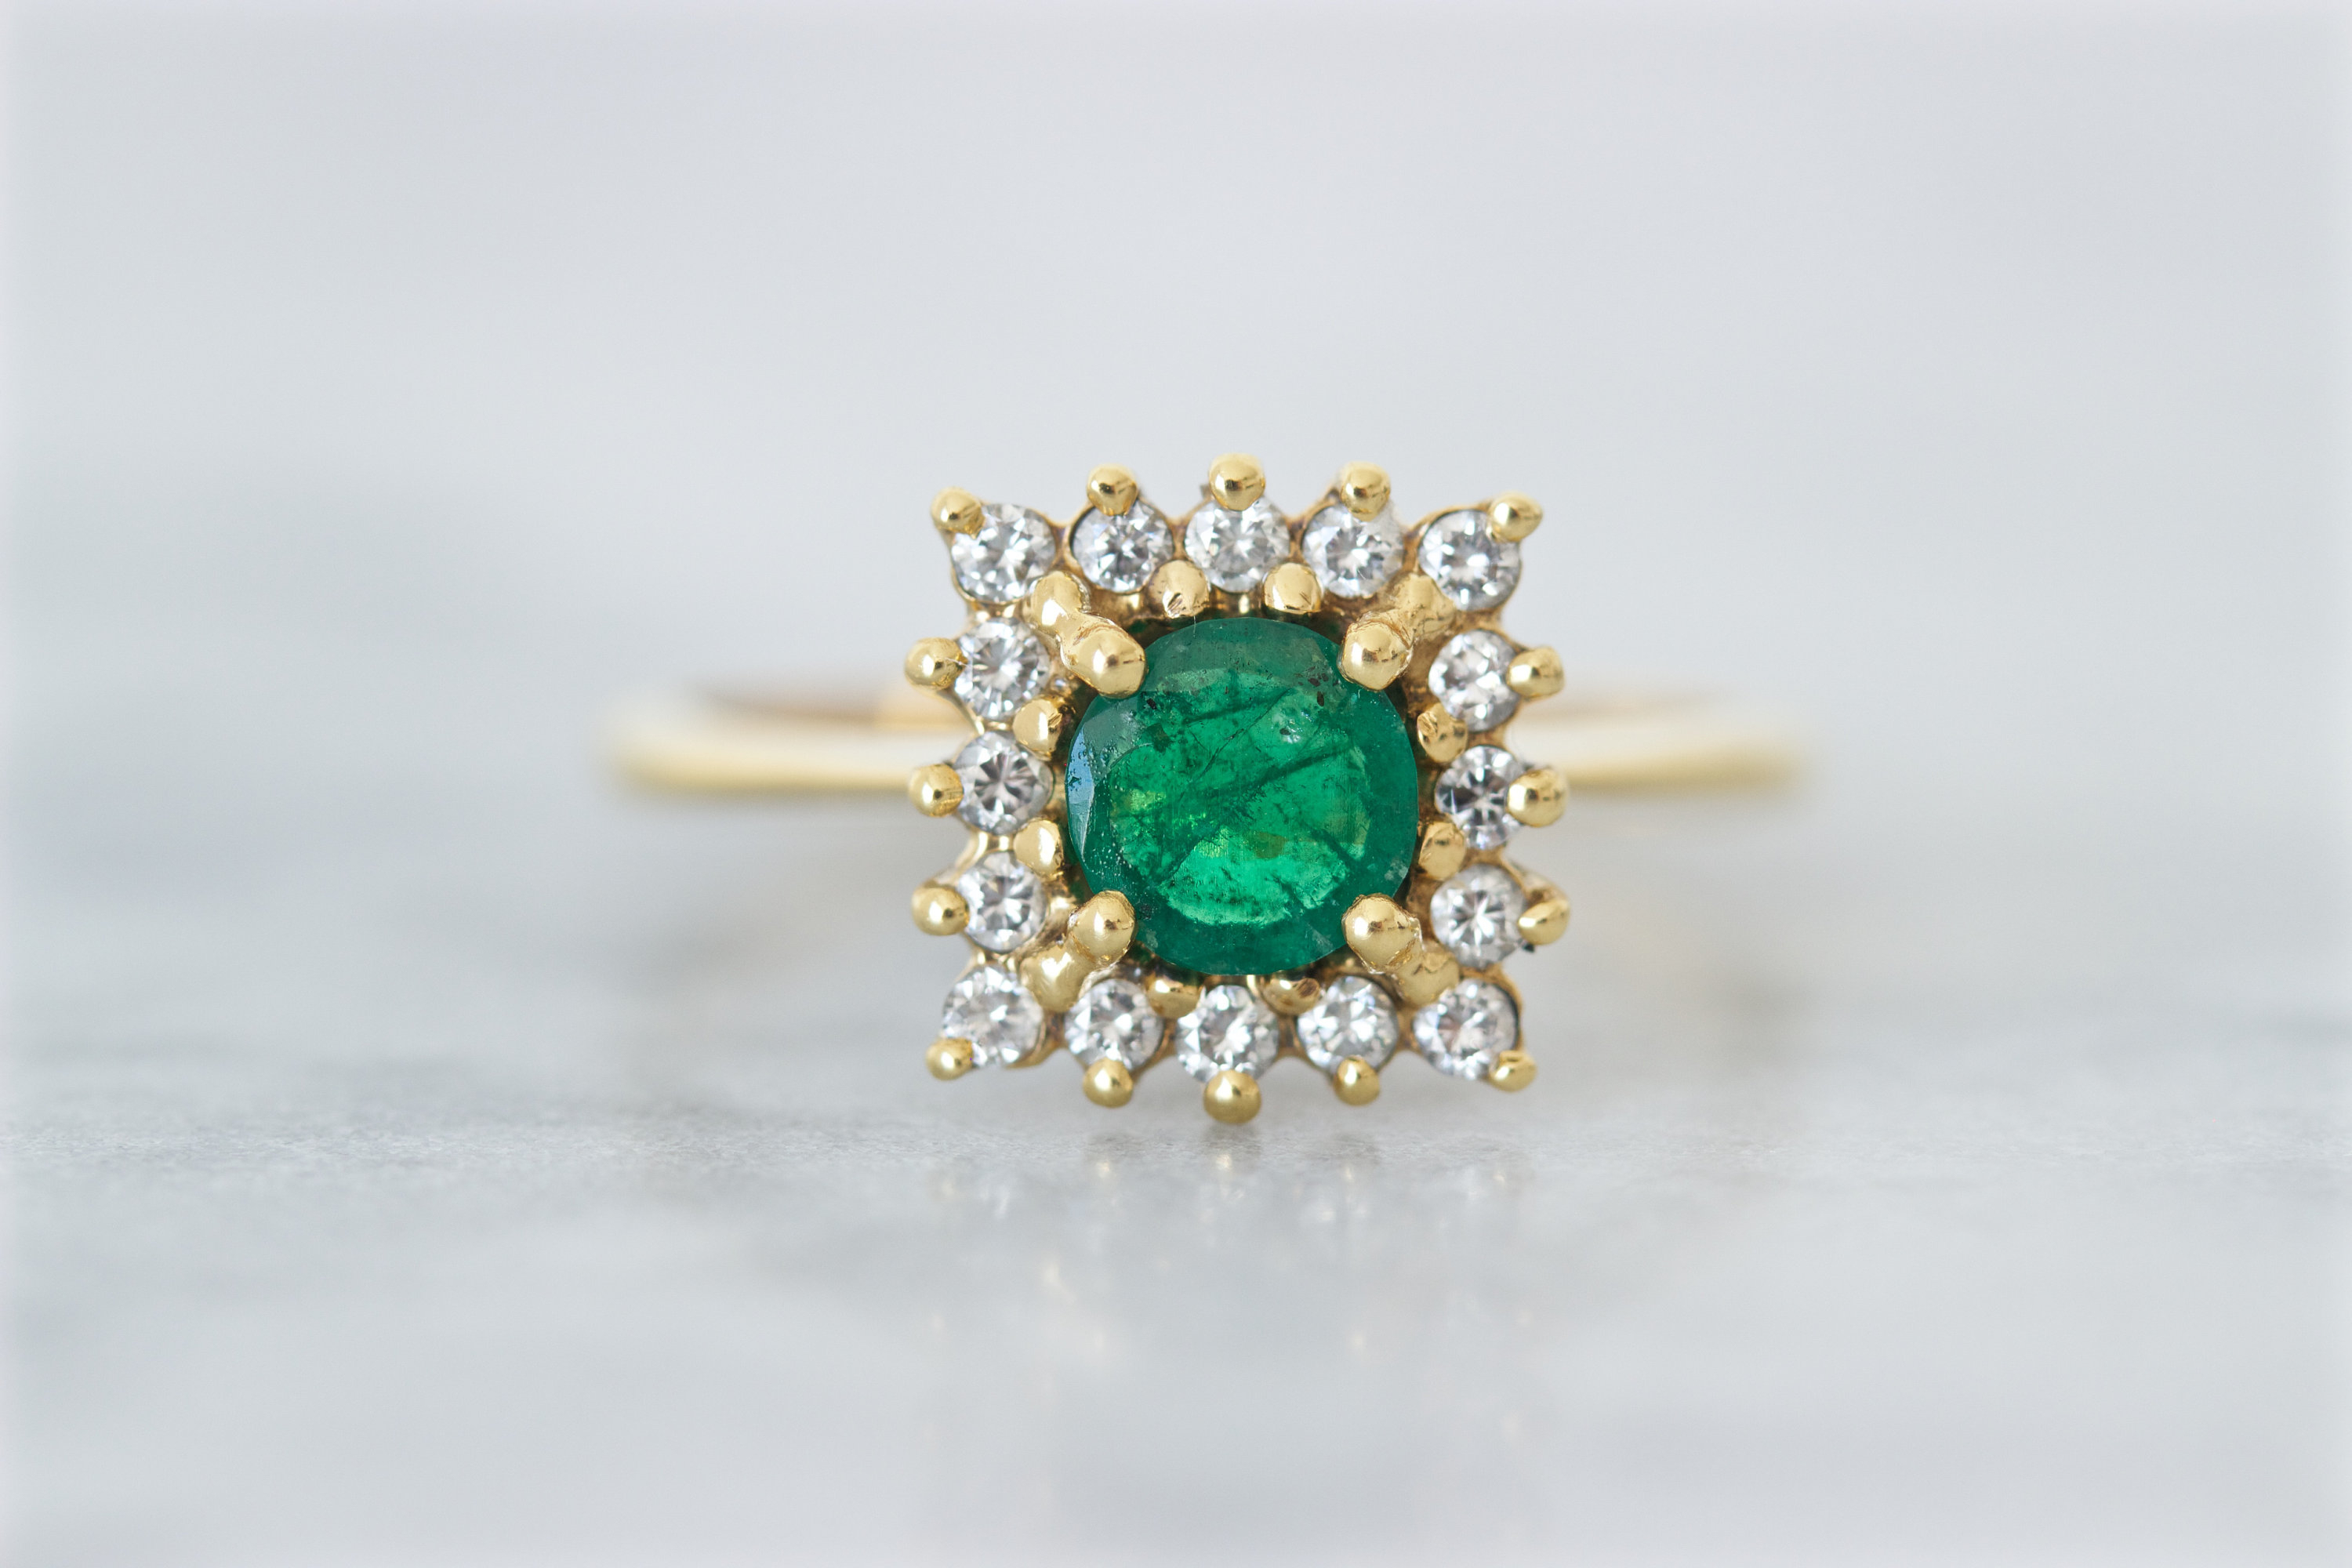 Vintage Emerald Engagement Ring, Square Diamond Halo, 18K Yellow Gold,  April May Birthstone Jewelry For Women, Size  (View 23 of 25)